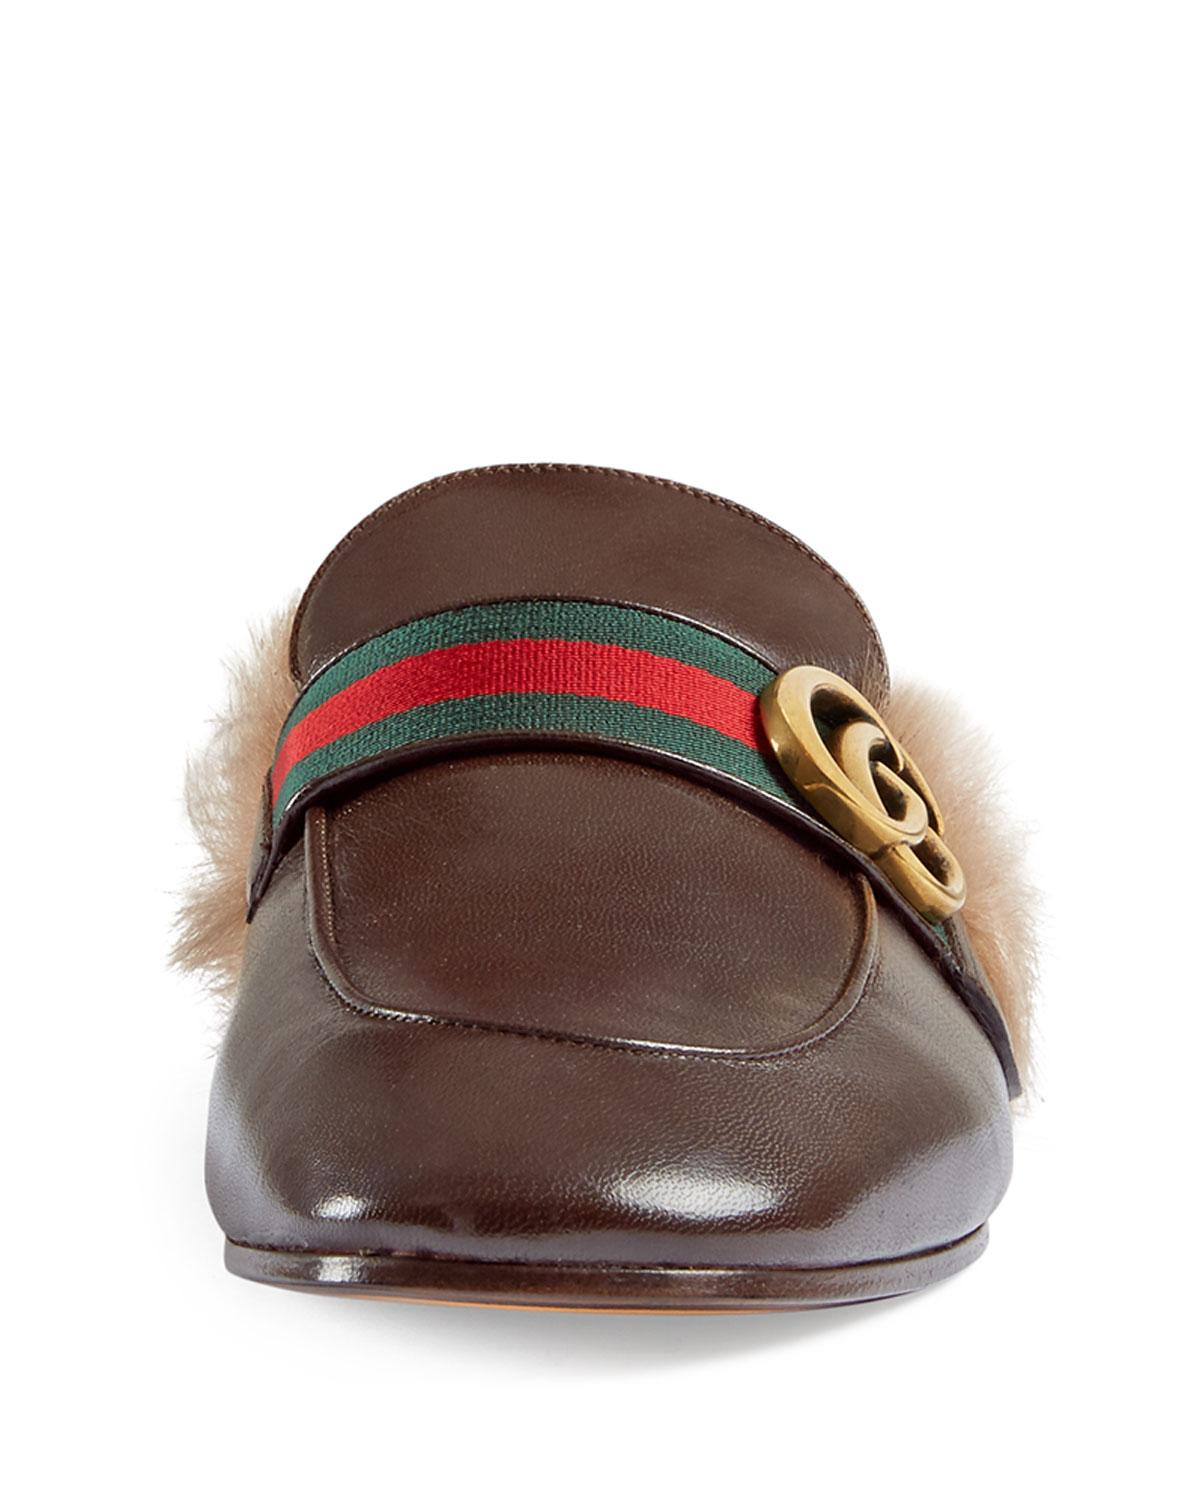 390d765534c Gucci New Princetown Leather Fur-lined Slipper With Double G in Brown for  Men - Save 11% - Lyst